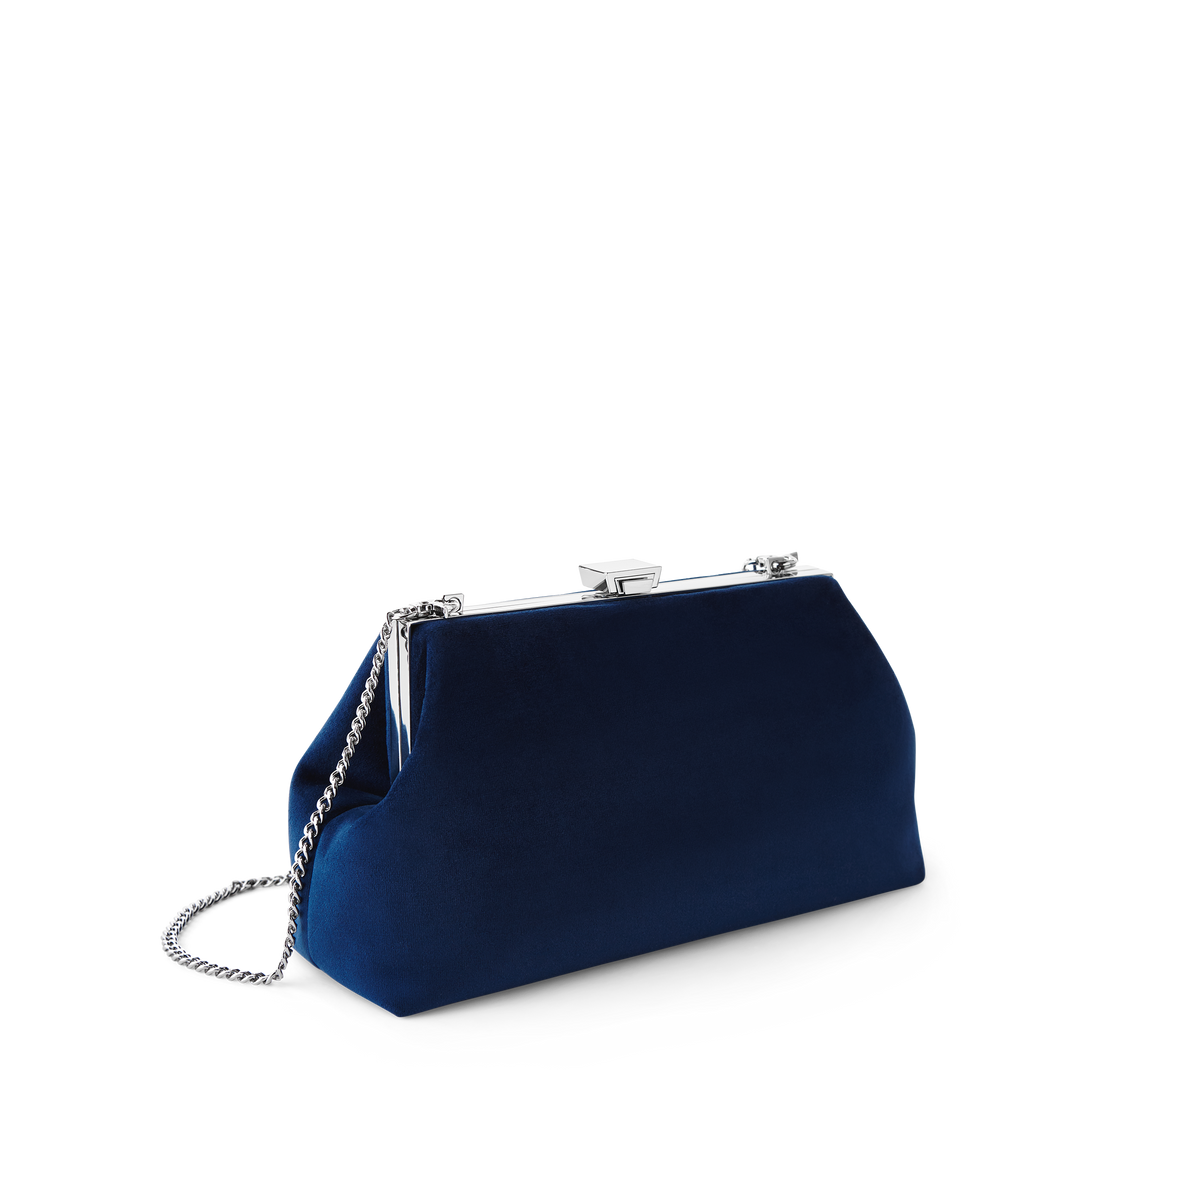 Midnight Velvet Jewel Bag with Silver Chain Strap